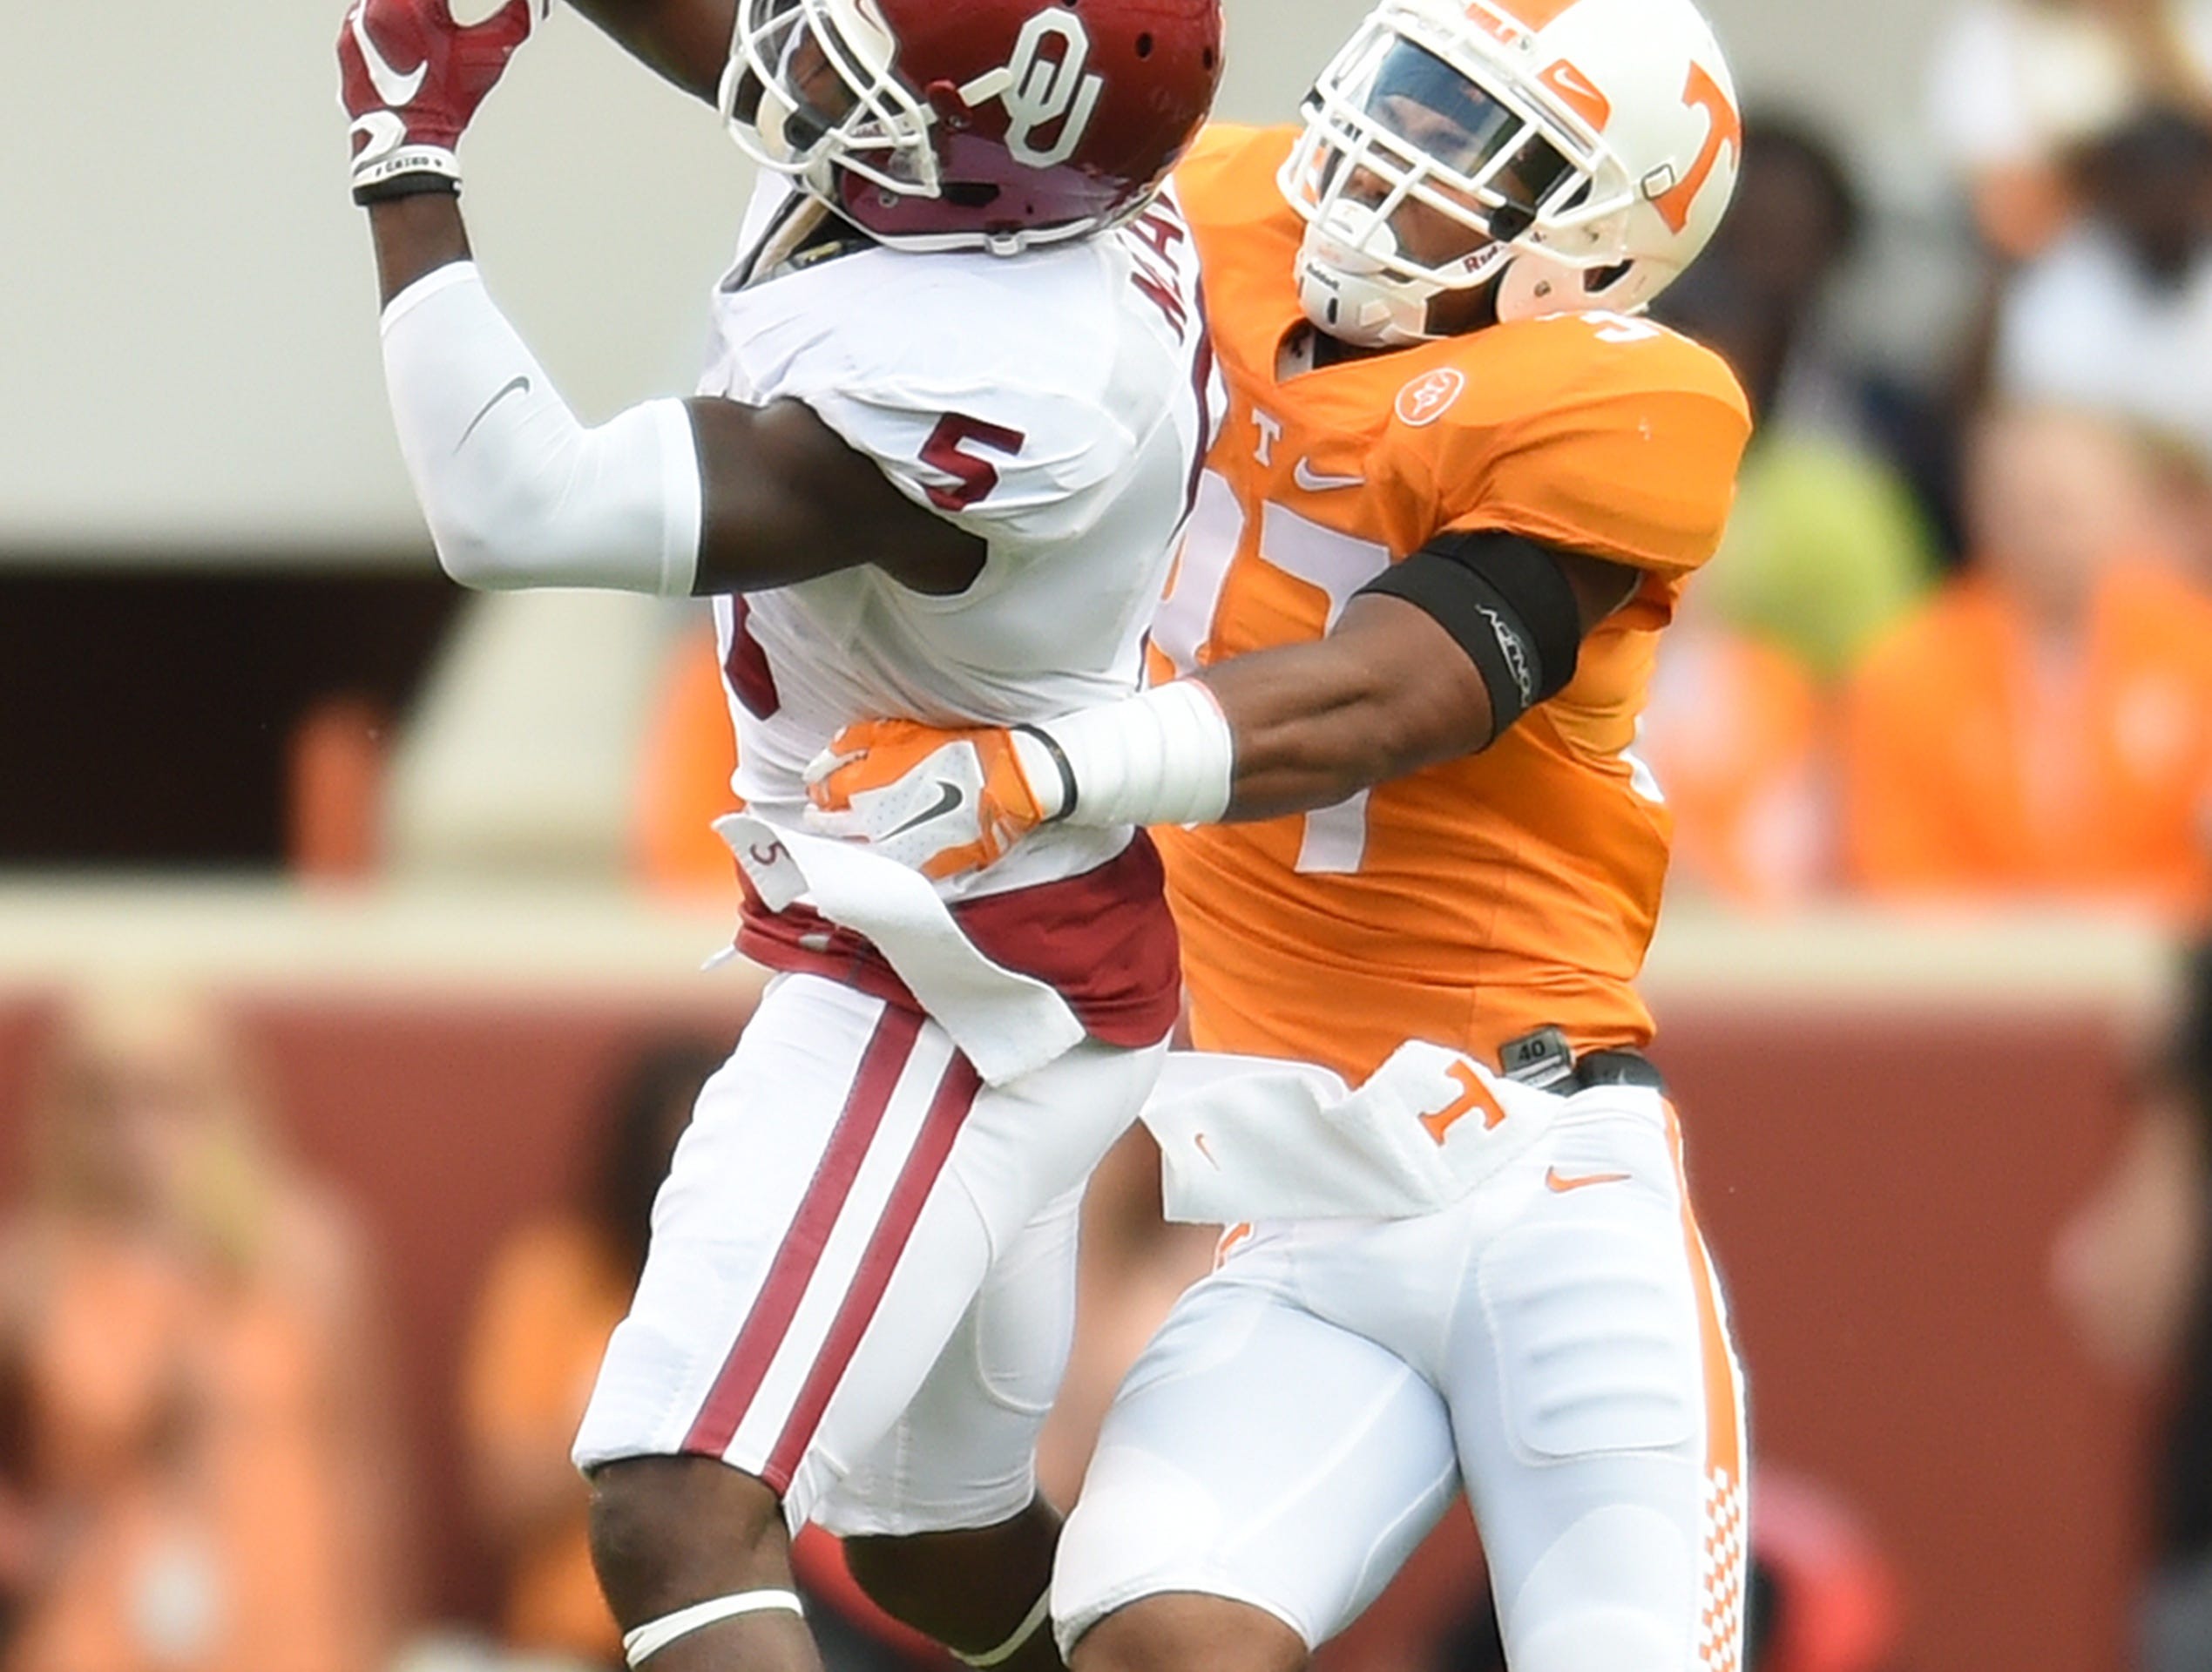 Tennessee defensive back Brian Randolph (37) breaks up a pass intended for Oklahoma wide receiver Durron Neal (5) during the first half on Saturday, Sept. 12, 2015.